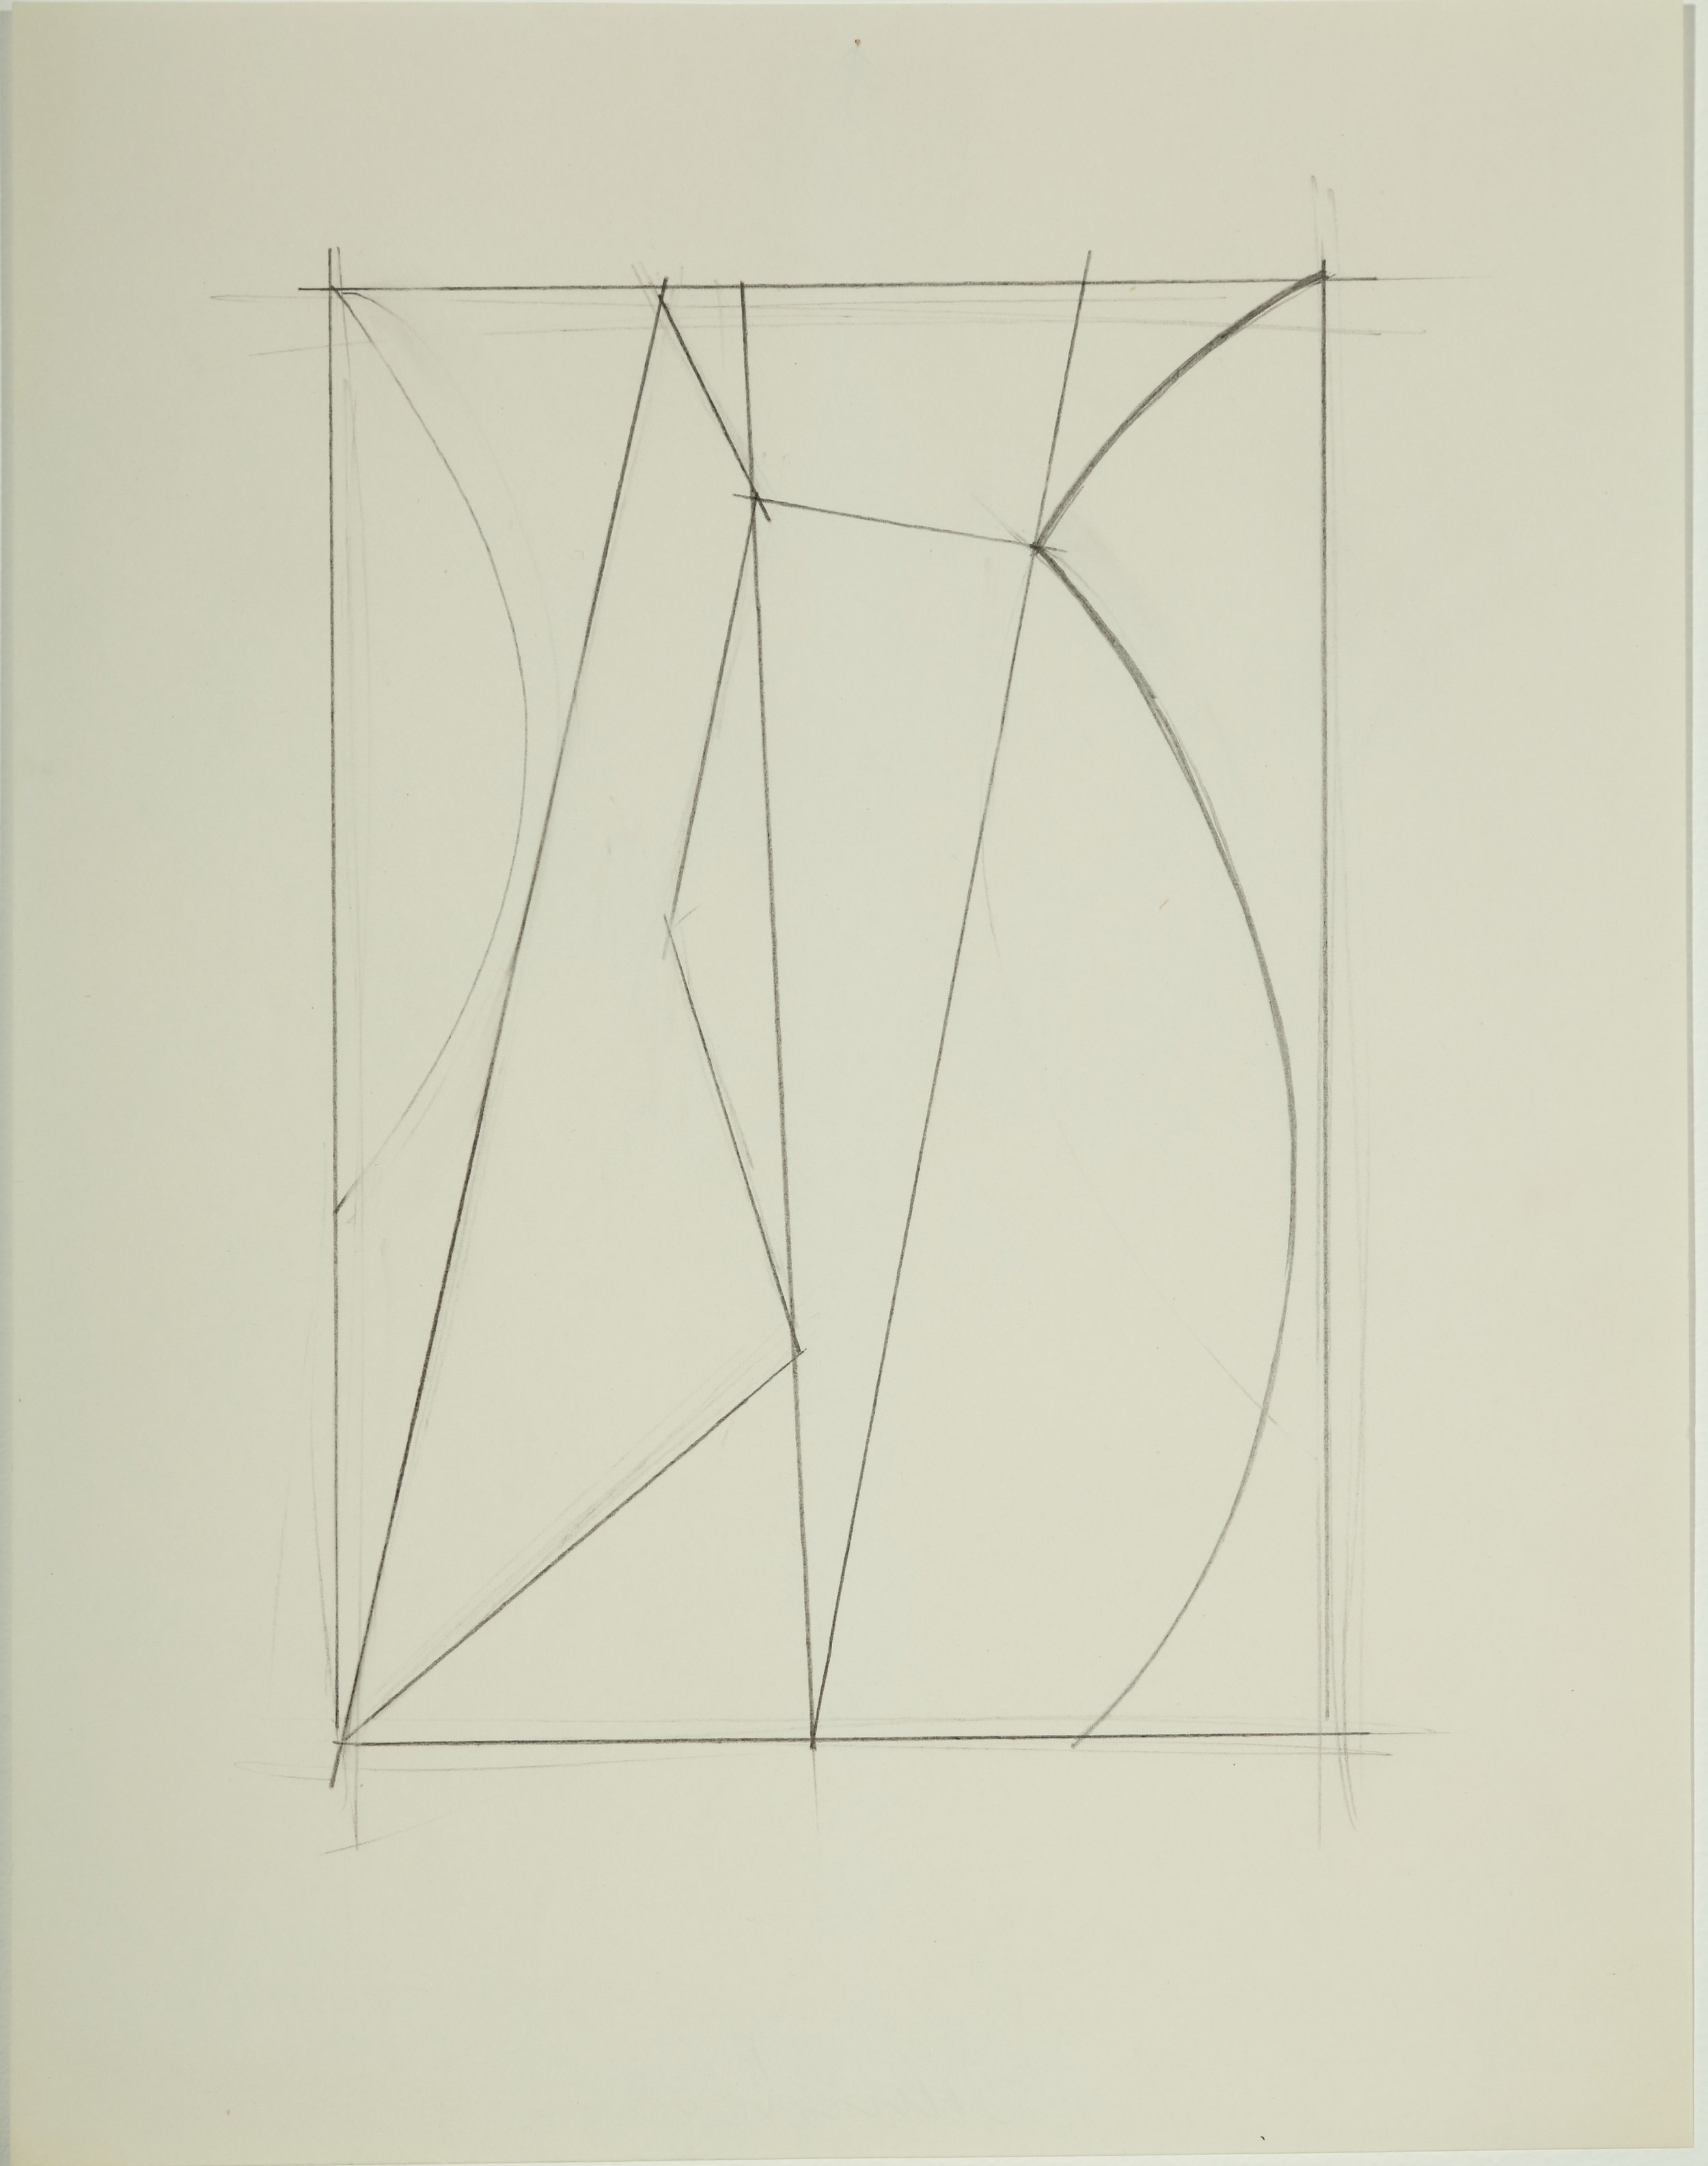 Untitled,  1983 Pencil on paper 11H x 8.50W inches